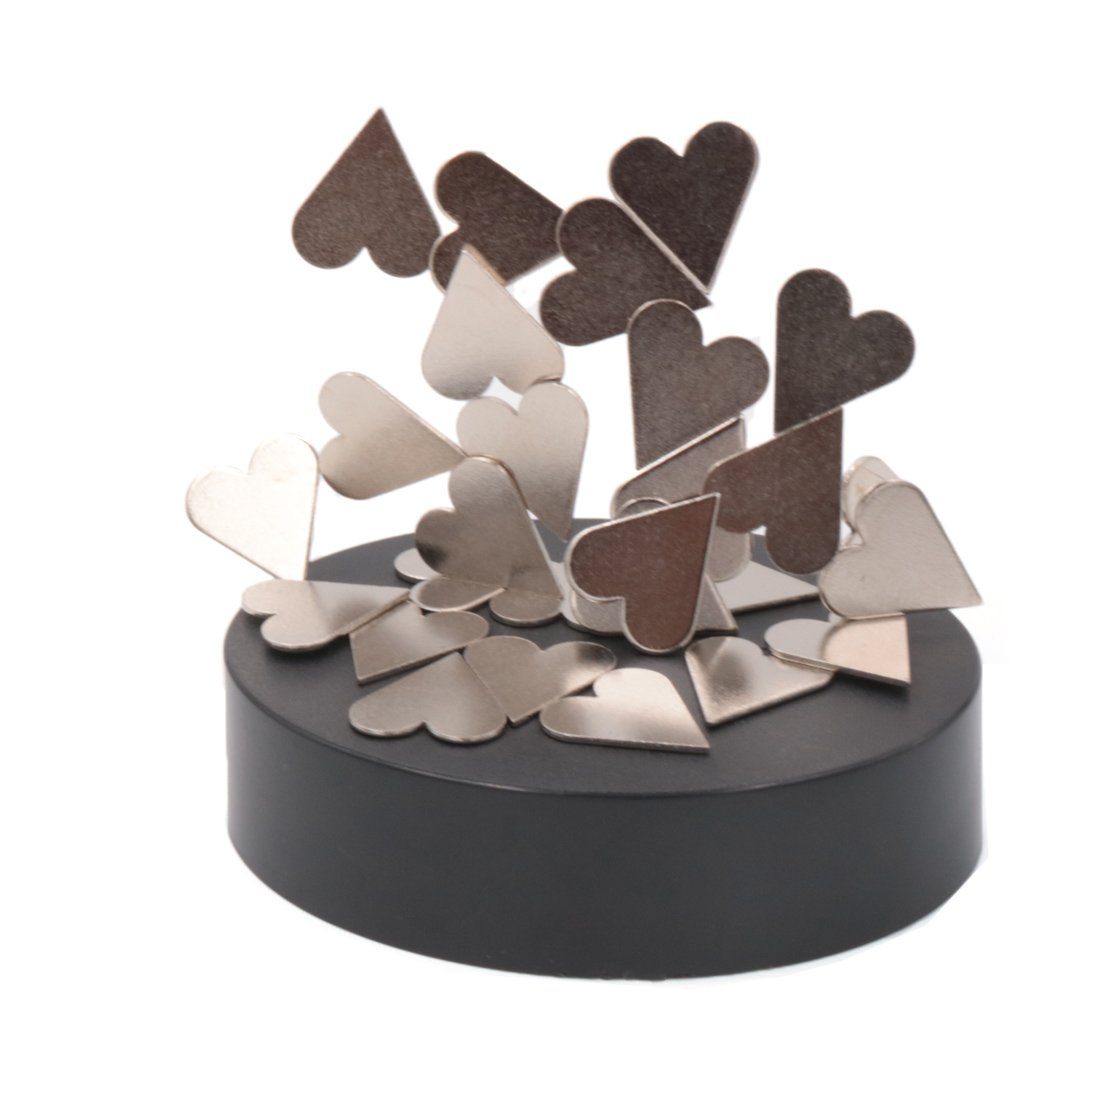 AblueA Magnetic Sculpture Desk Toy Coffee Table Piece As Office Gift Stocking Stuffer (Oval Base - Hearts)